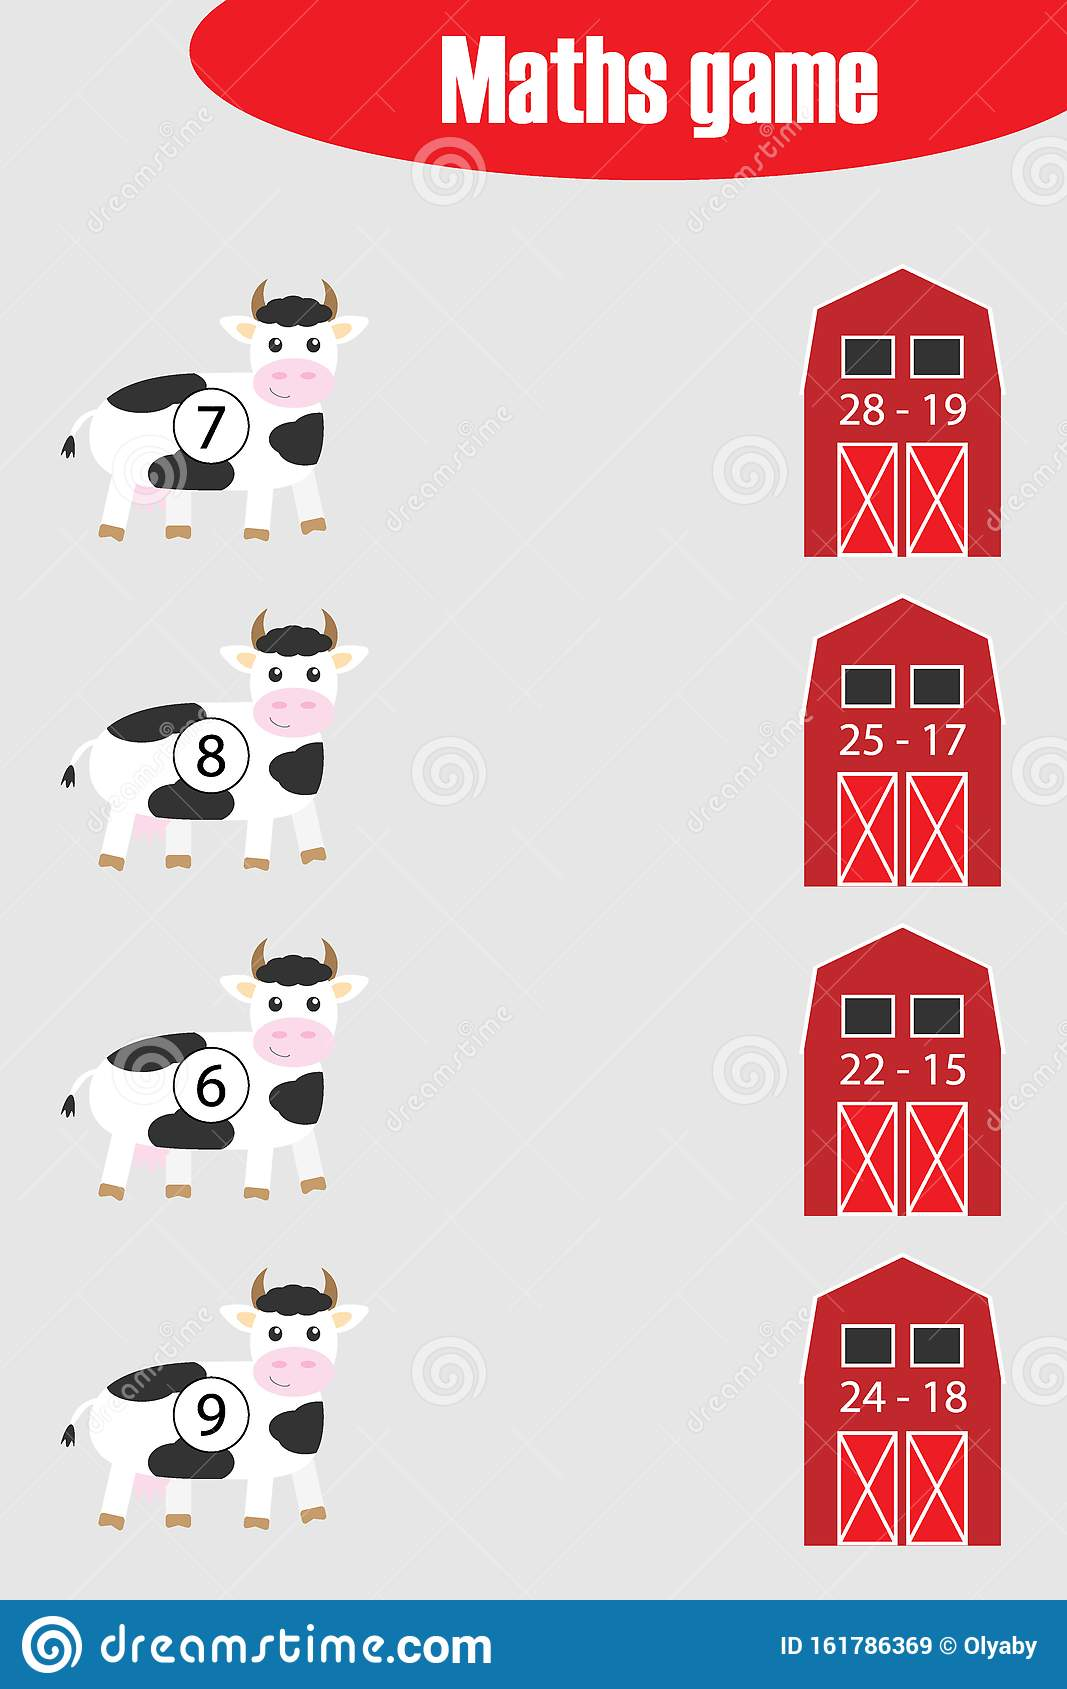 Maths Game With Pictures Of Cow And Farm Barn For Children